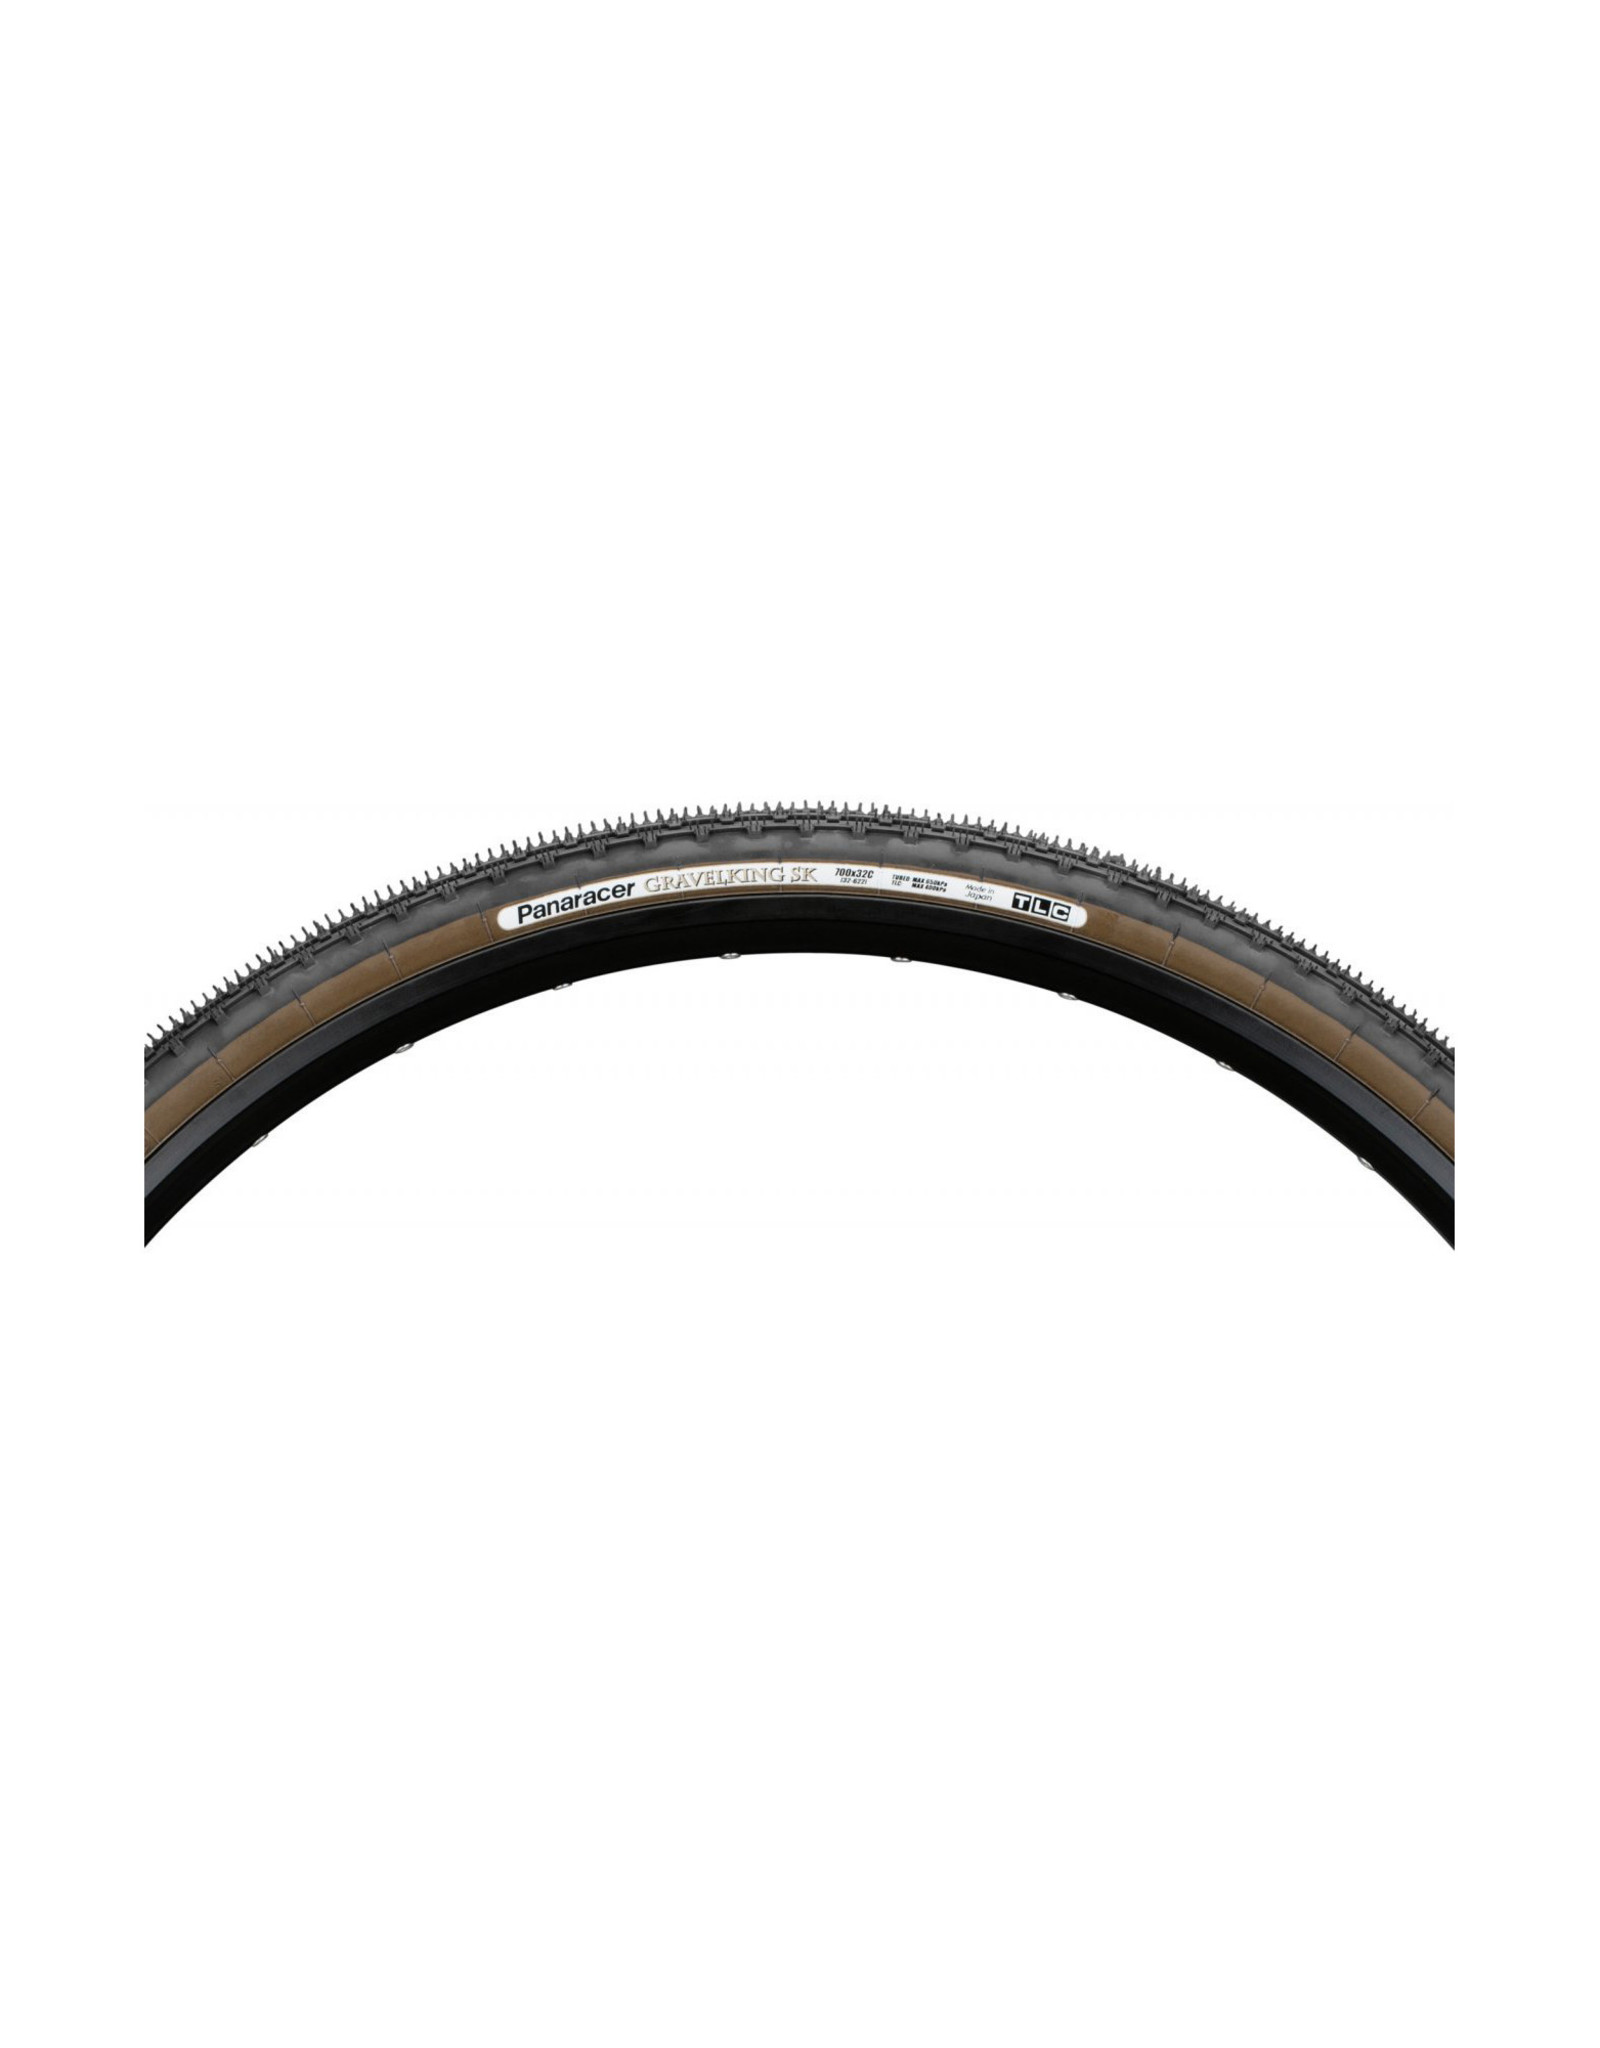 Panaracer Gravelking SK TLC Folding Tyre - 700 x 35c / 38c - Black / Brown